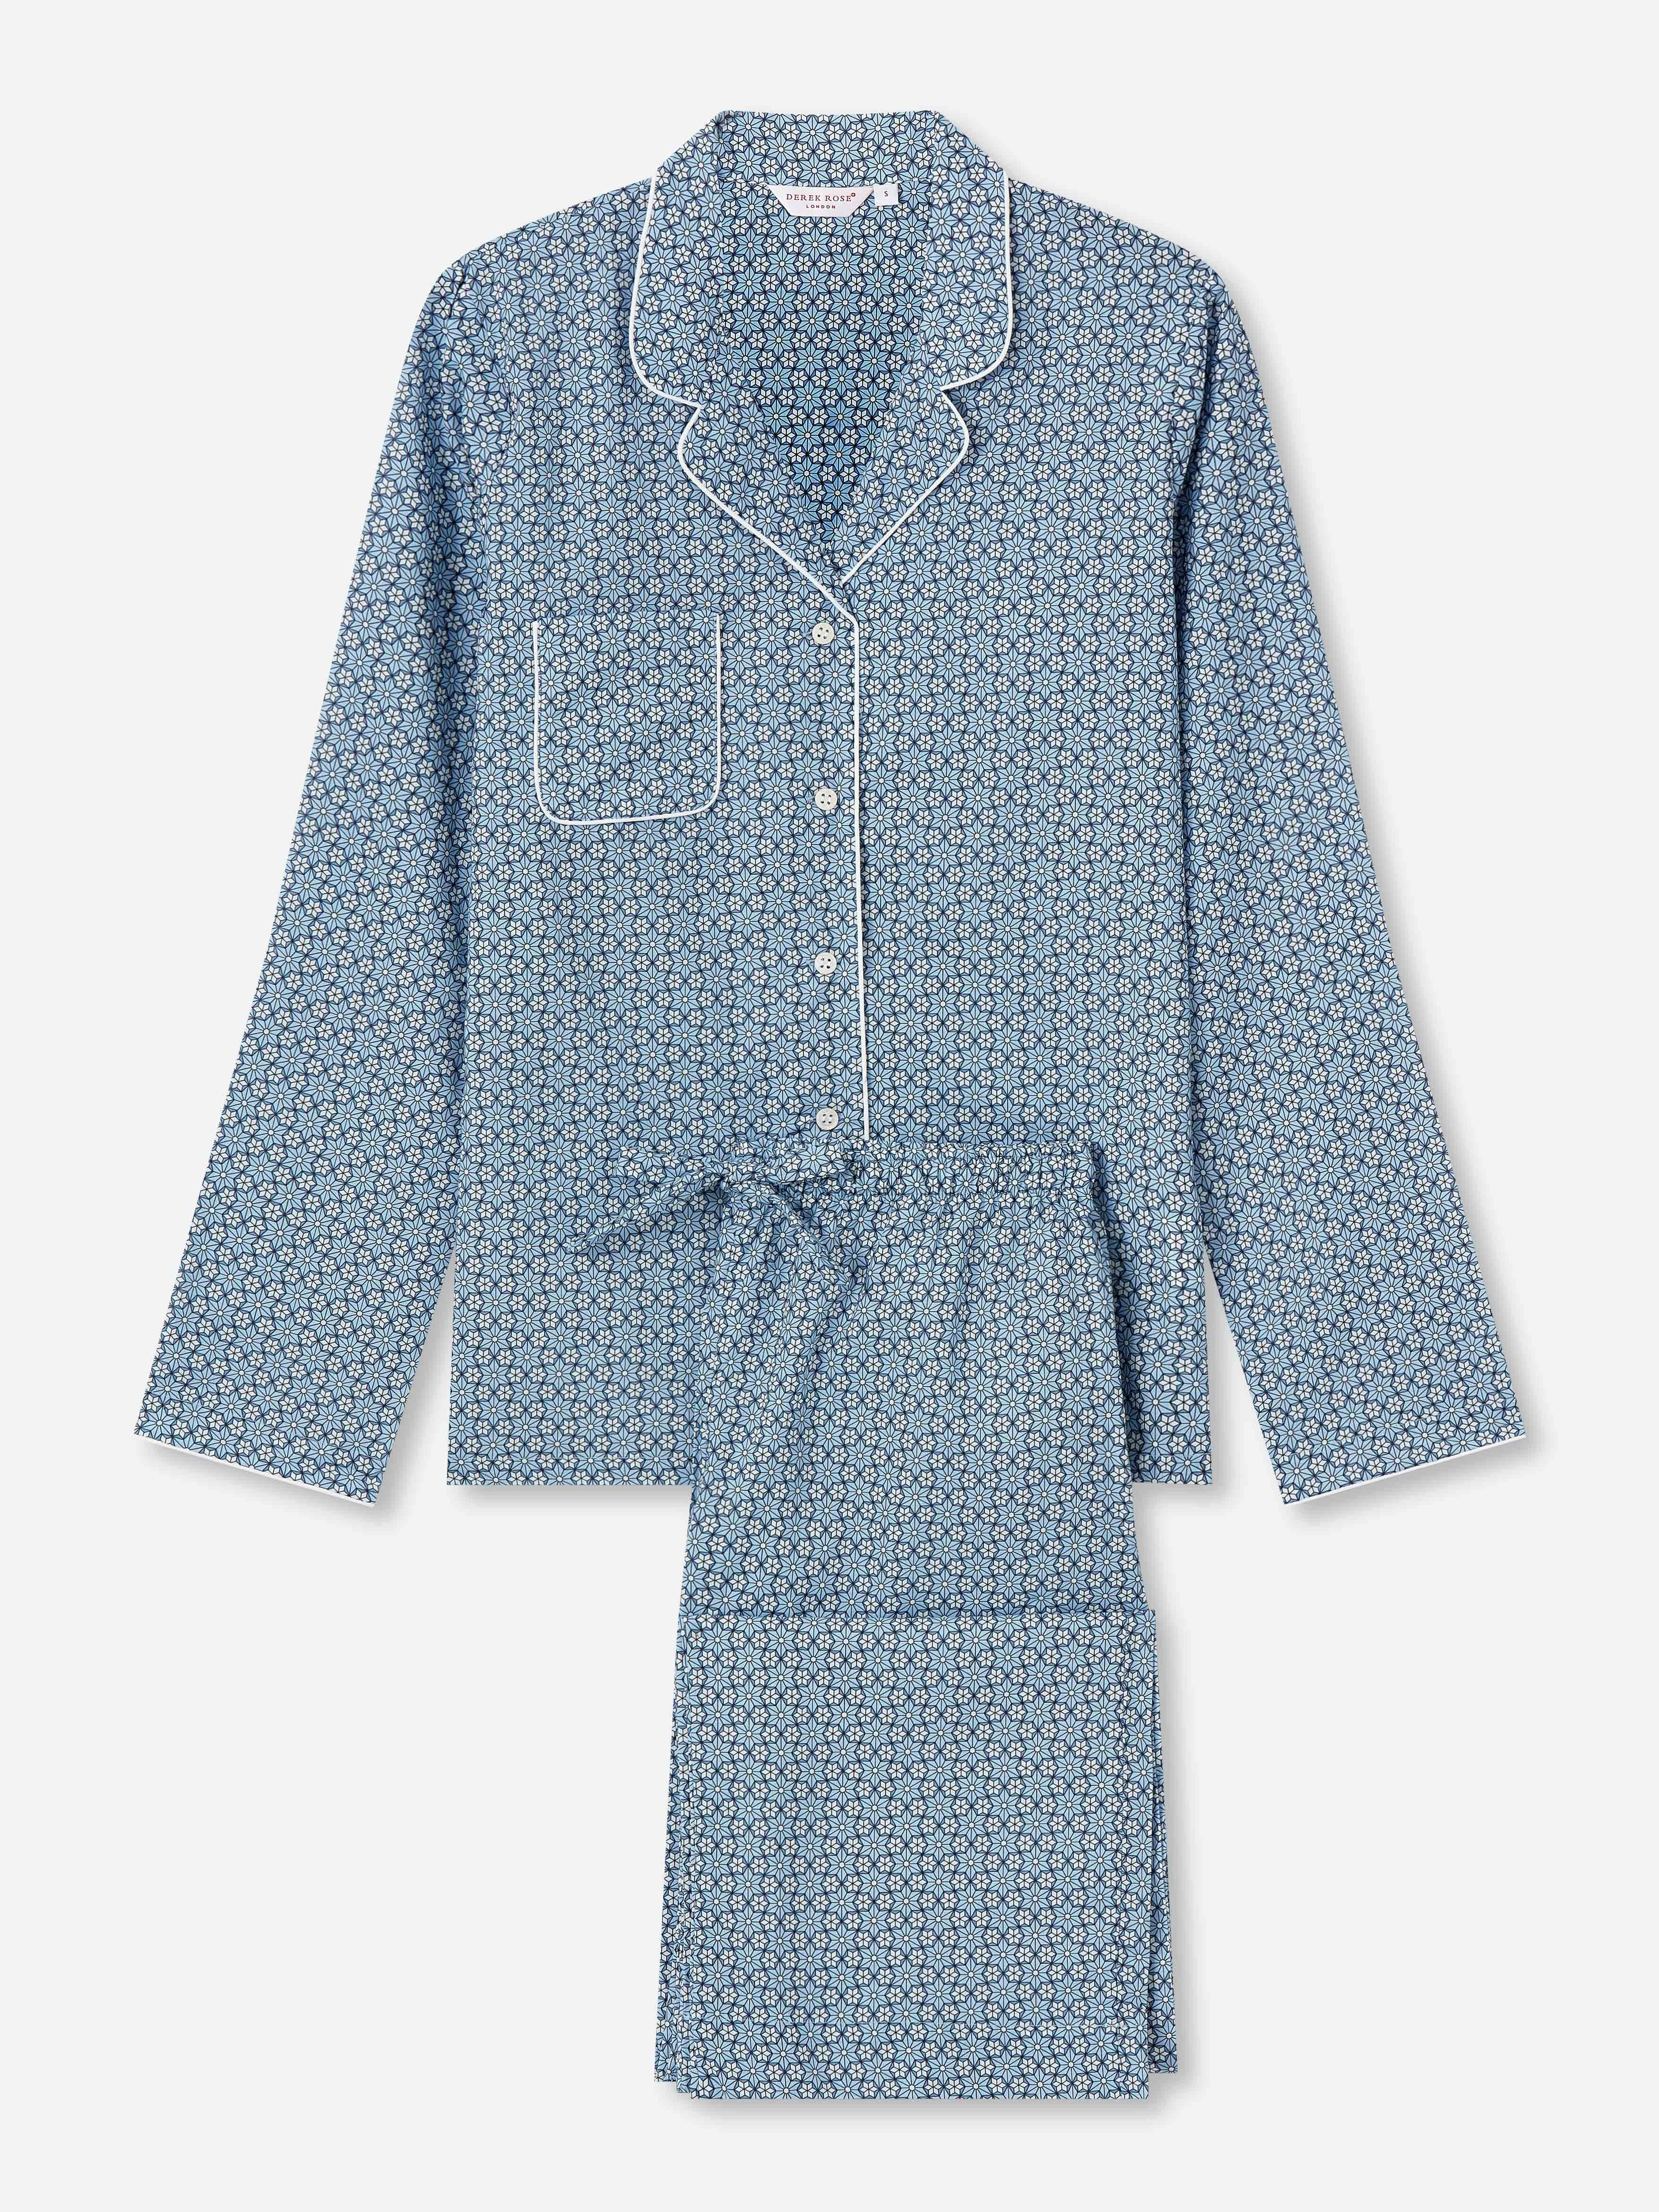 Women's Pyjamas Ledbury 37 Cotton Batiste Blue